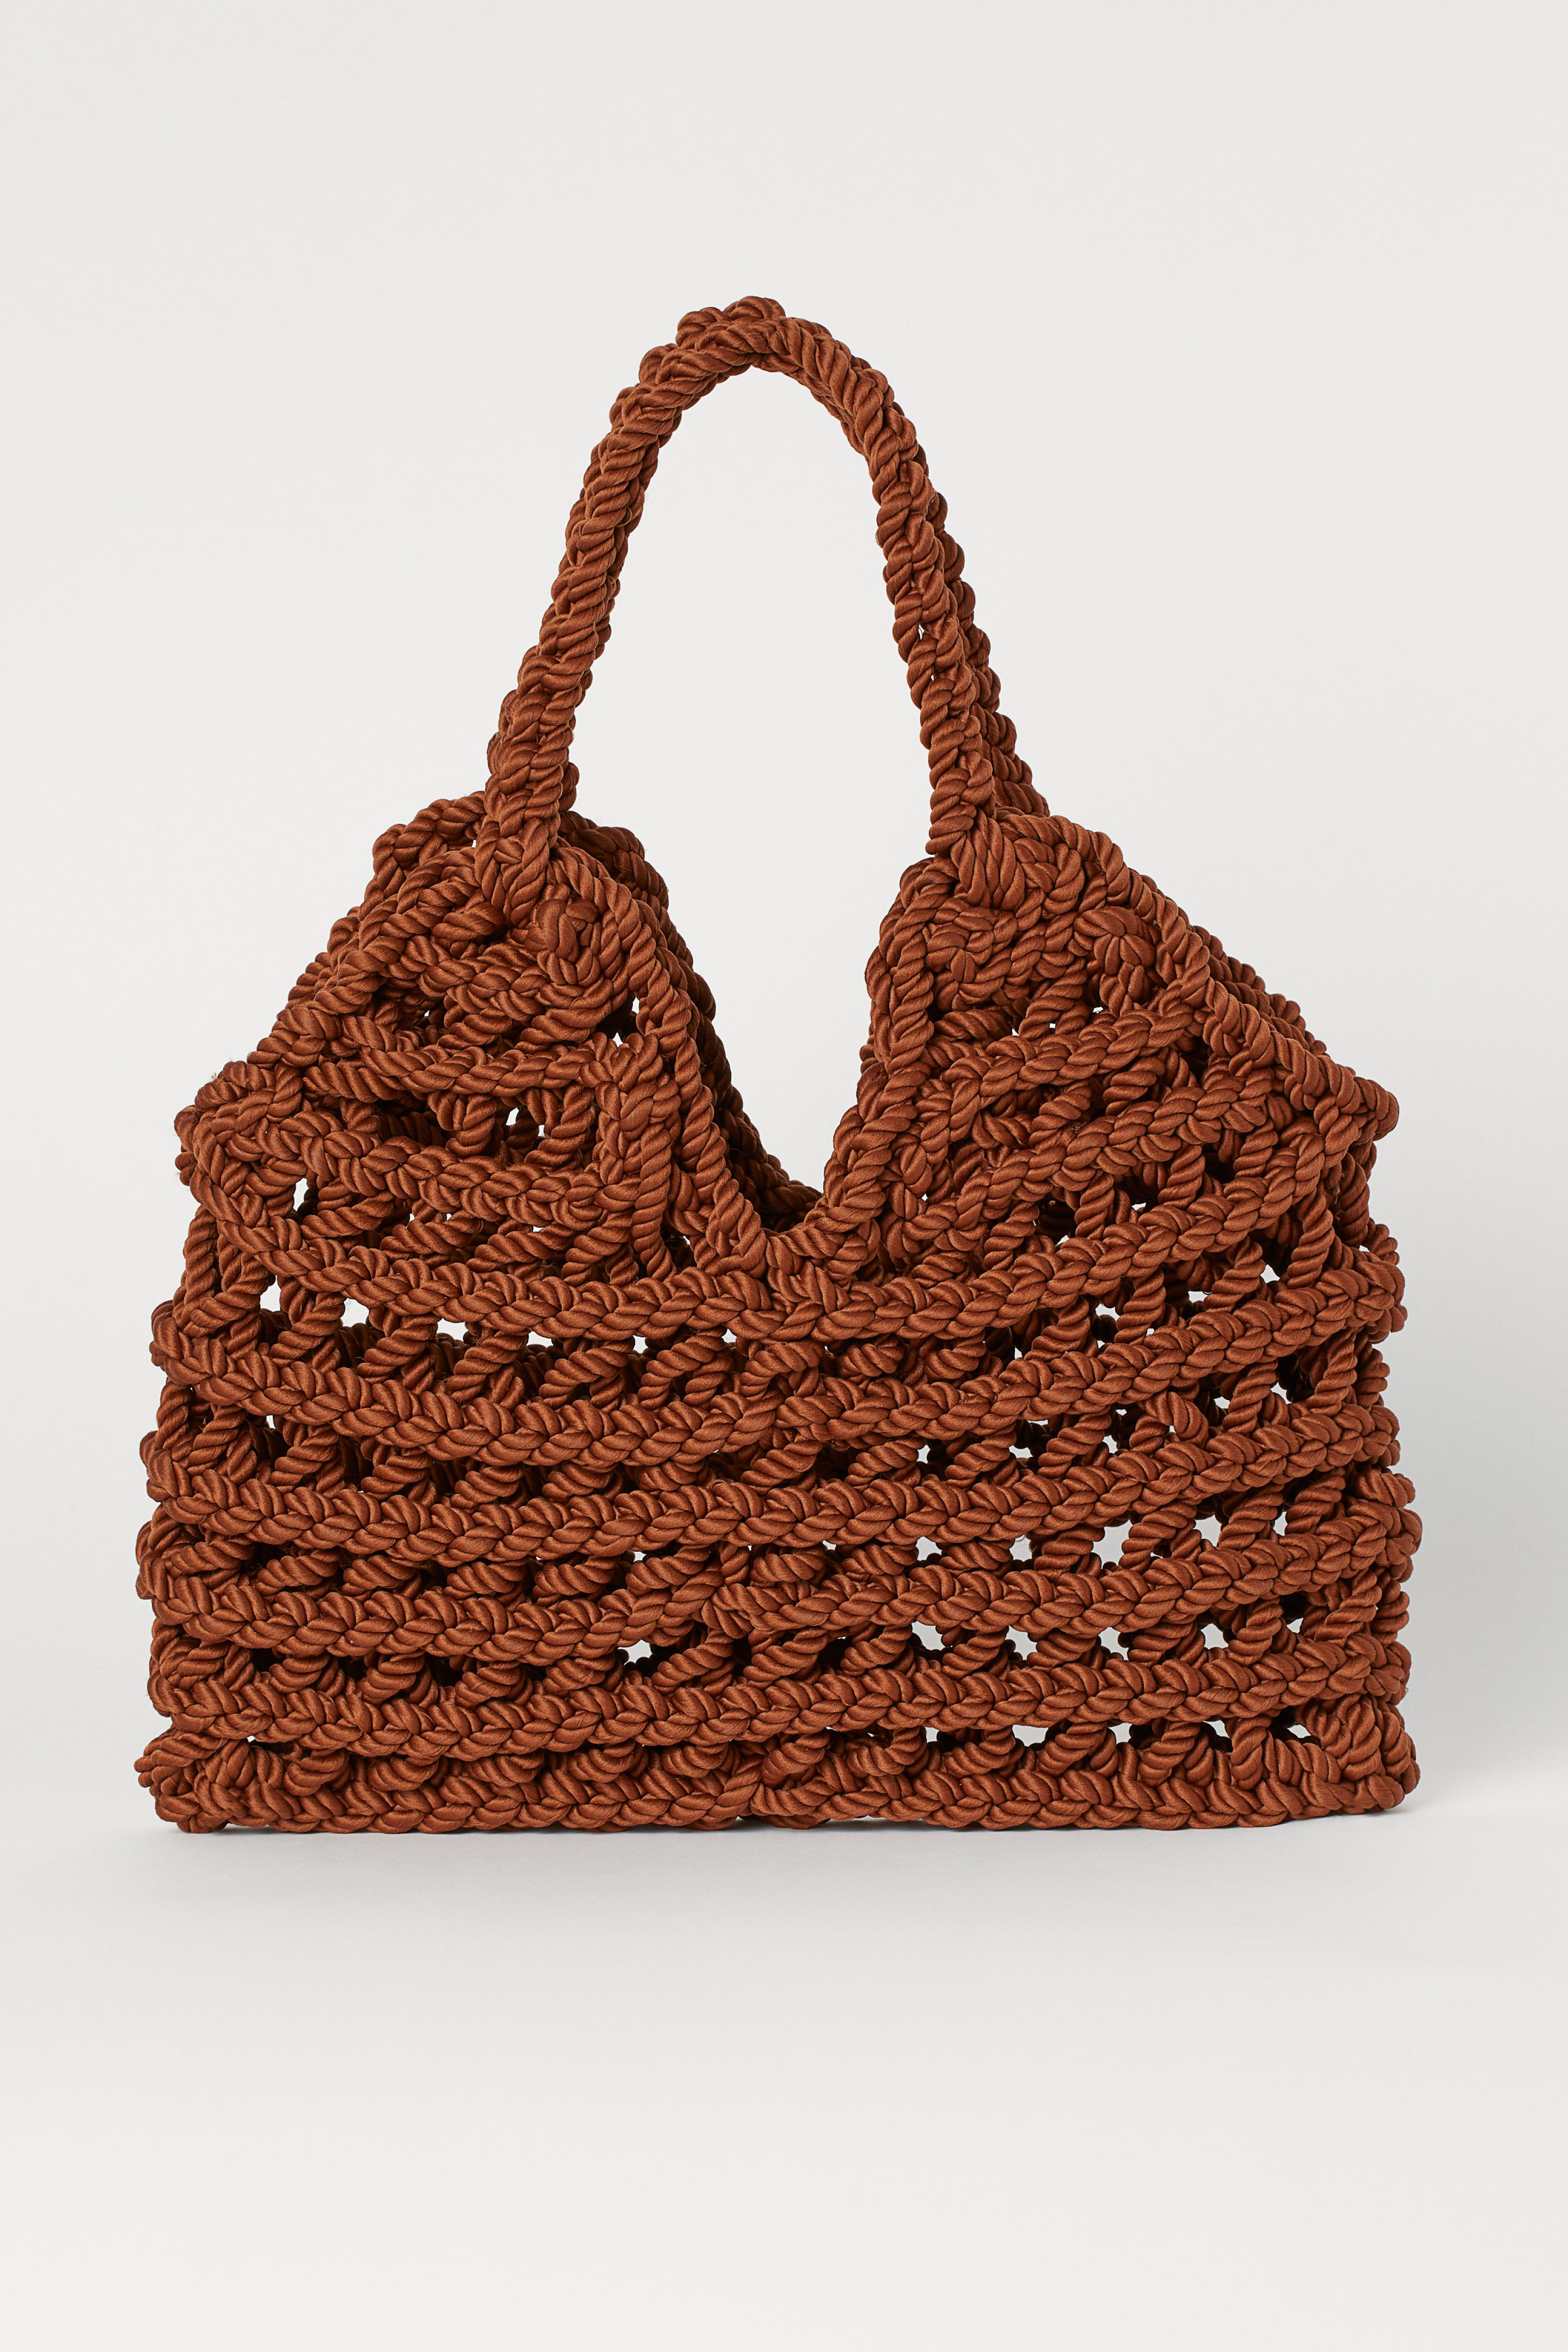 H&M knotted tote